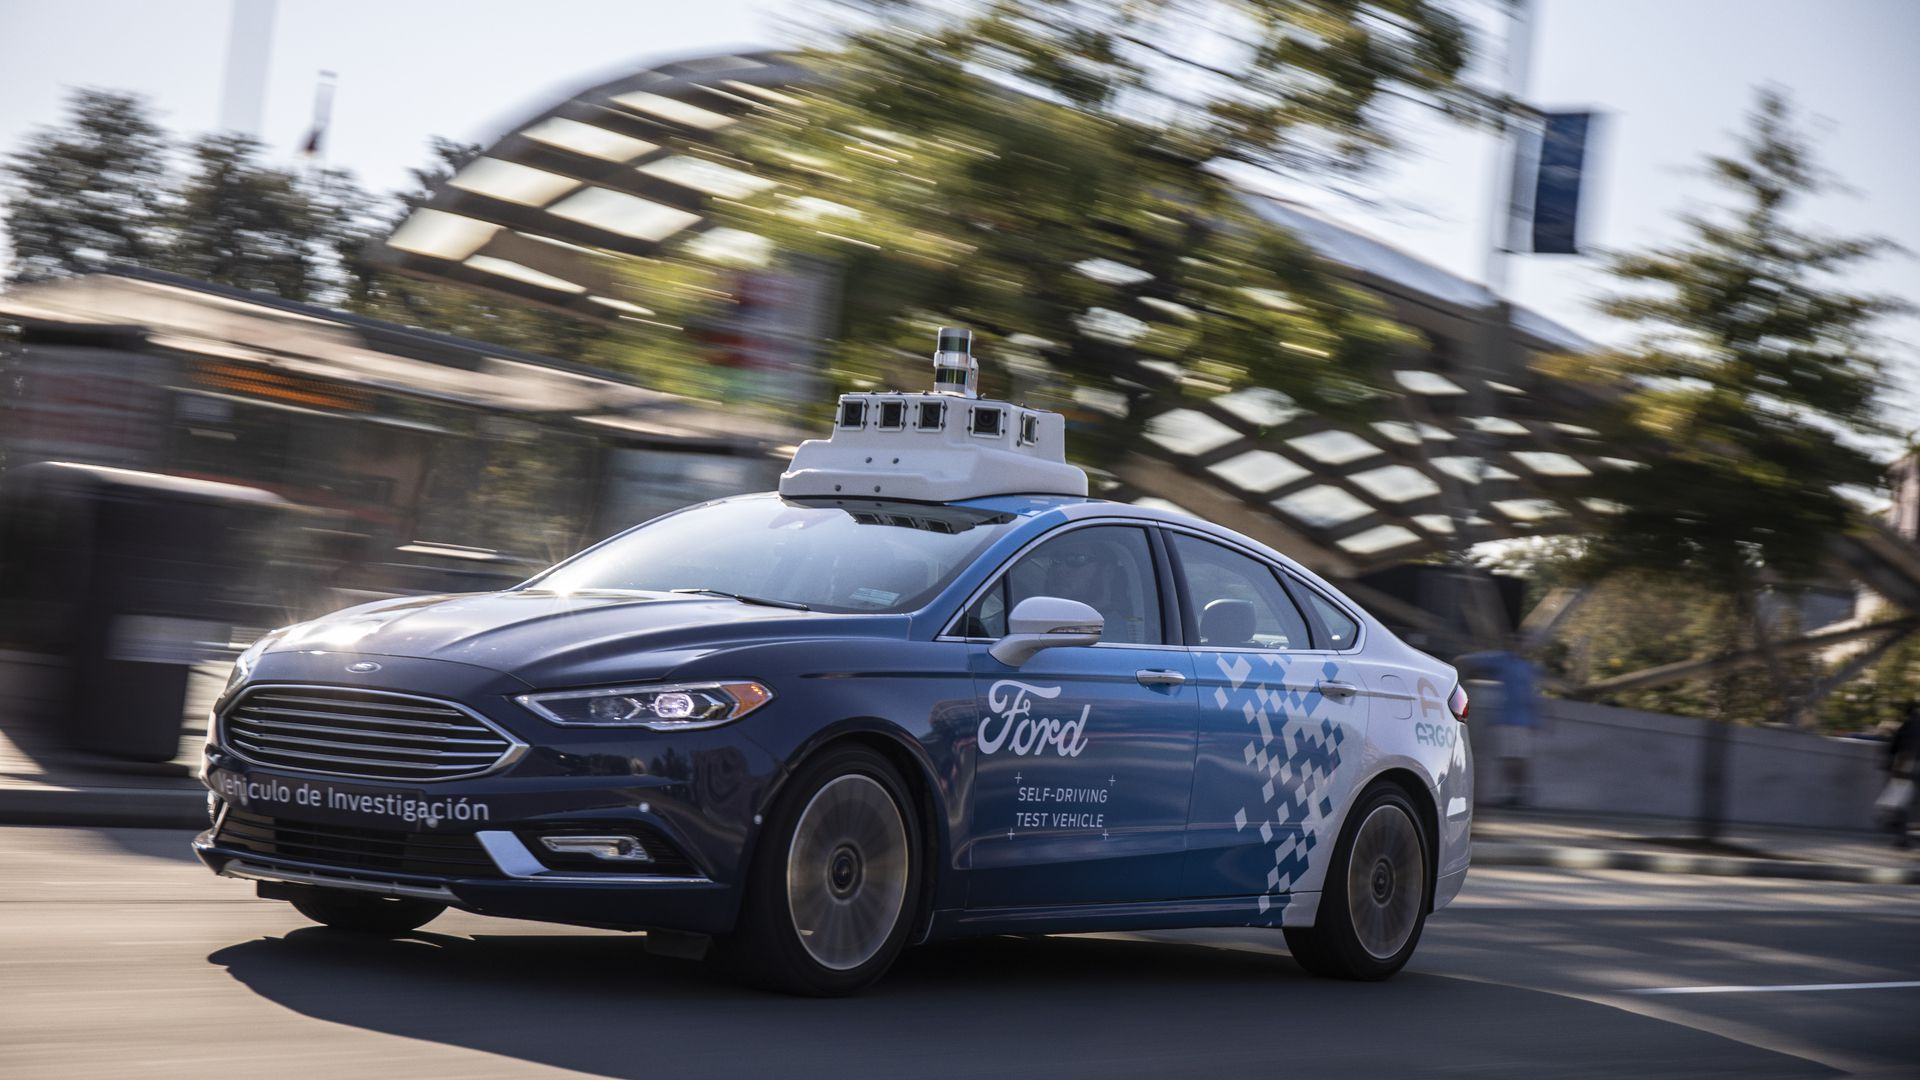 One of Ford's self-driving test vehicles on the streets of Washington, D.C.